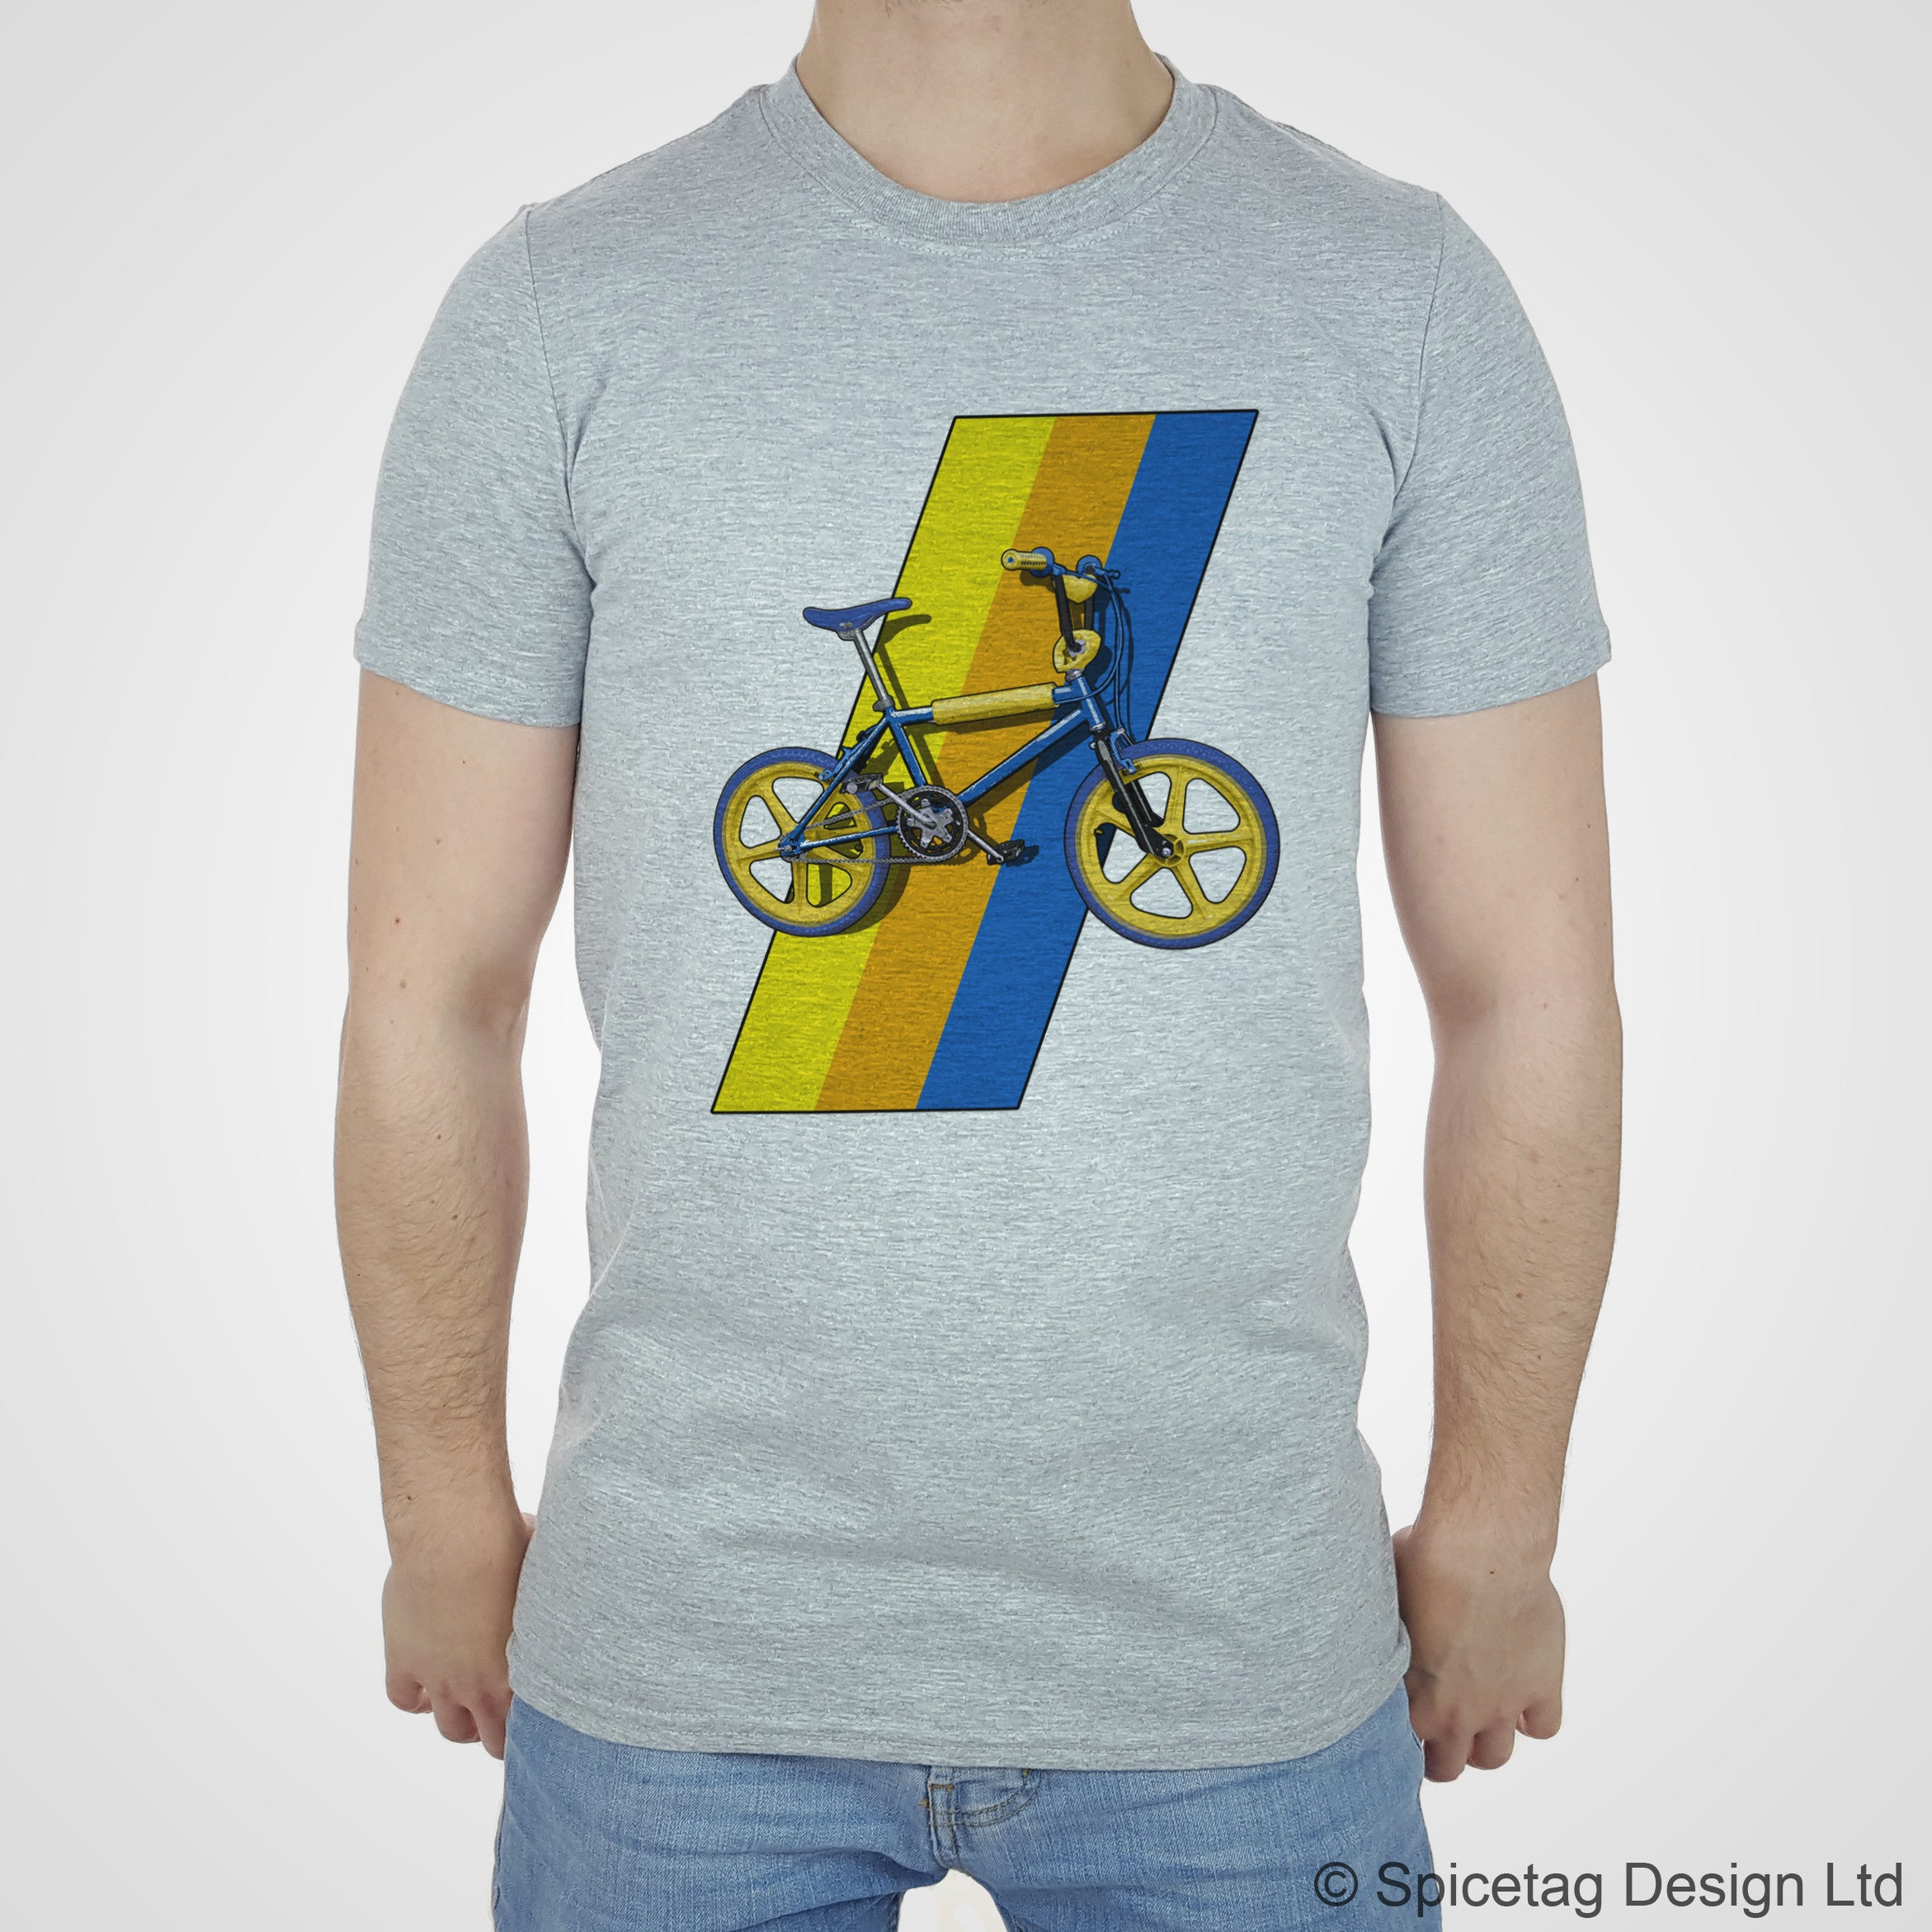 Spiectag mag BMX raleigh burner grifter 80s 1980s retro bike bicycle cycle cycling dirt cross T-shirt Tshirt T shirt Tee fashion style heather white